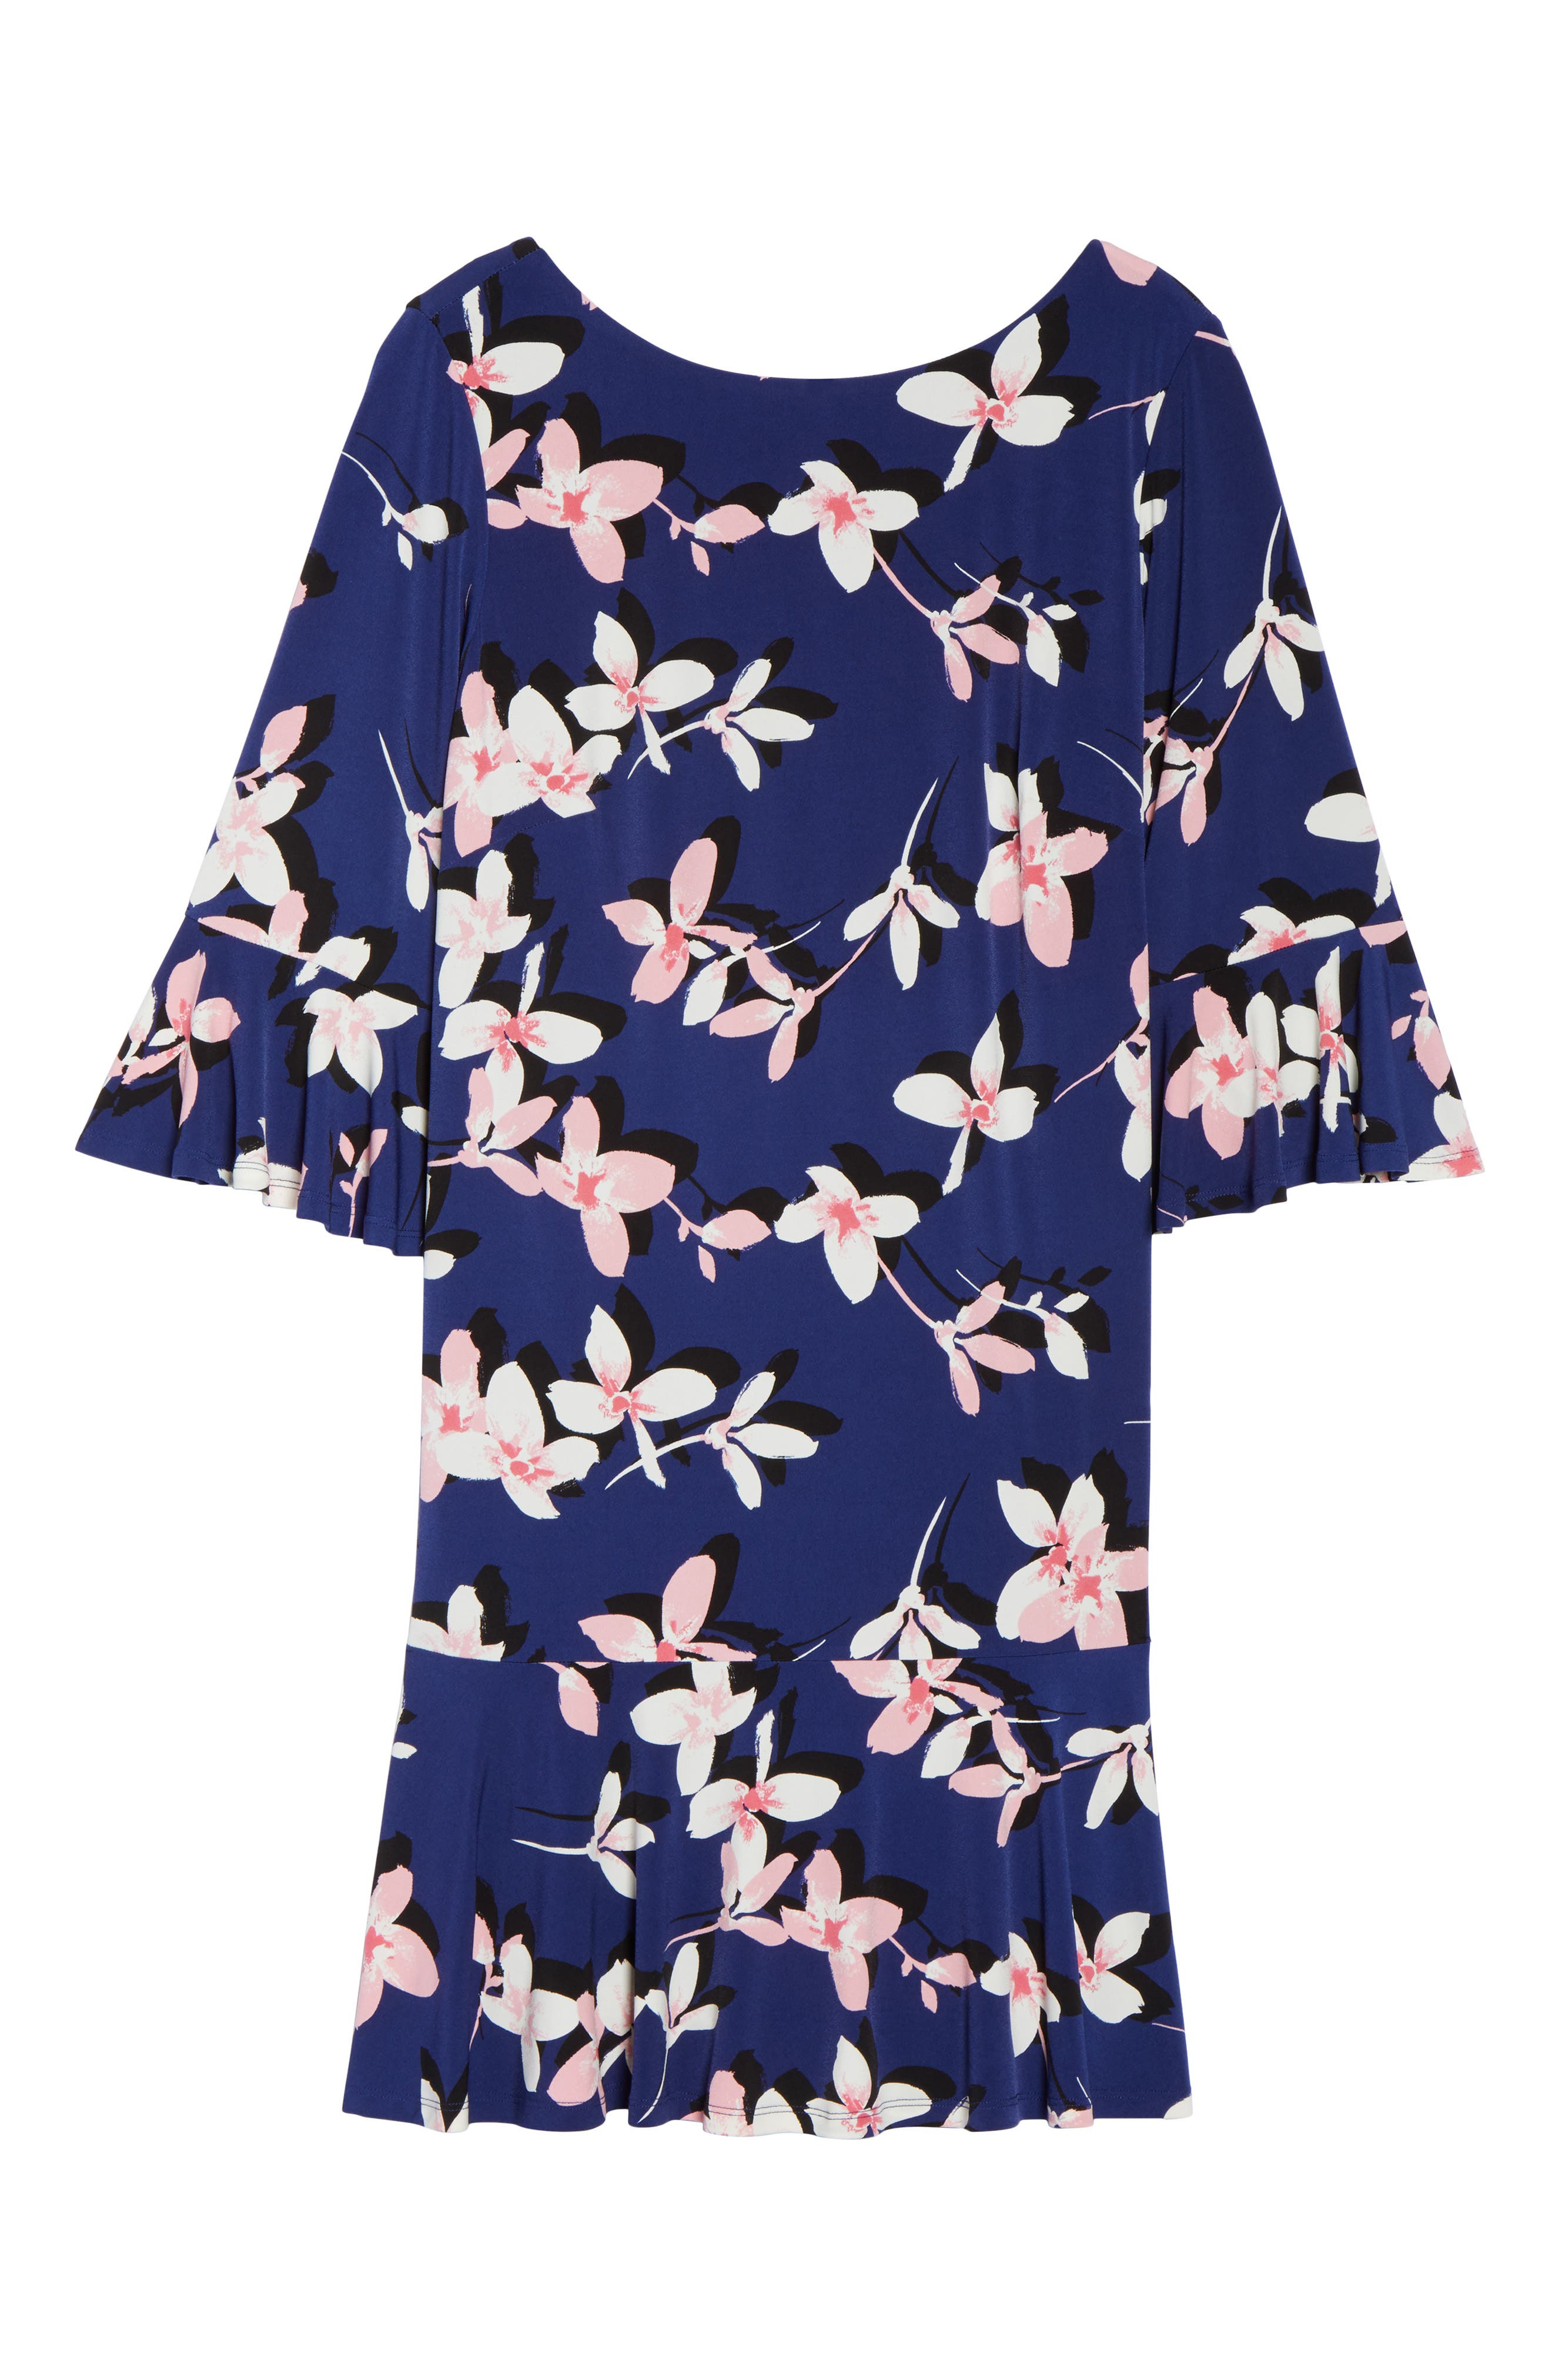 Floral Print Bell Sleeve Dress,                             Alternate thumbnail 6, color,                             Navy/ Pink